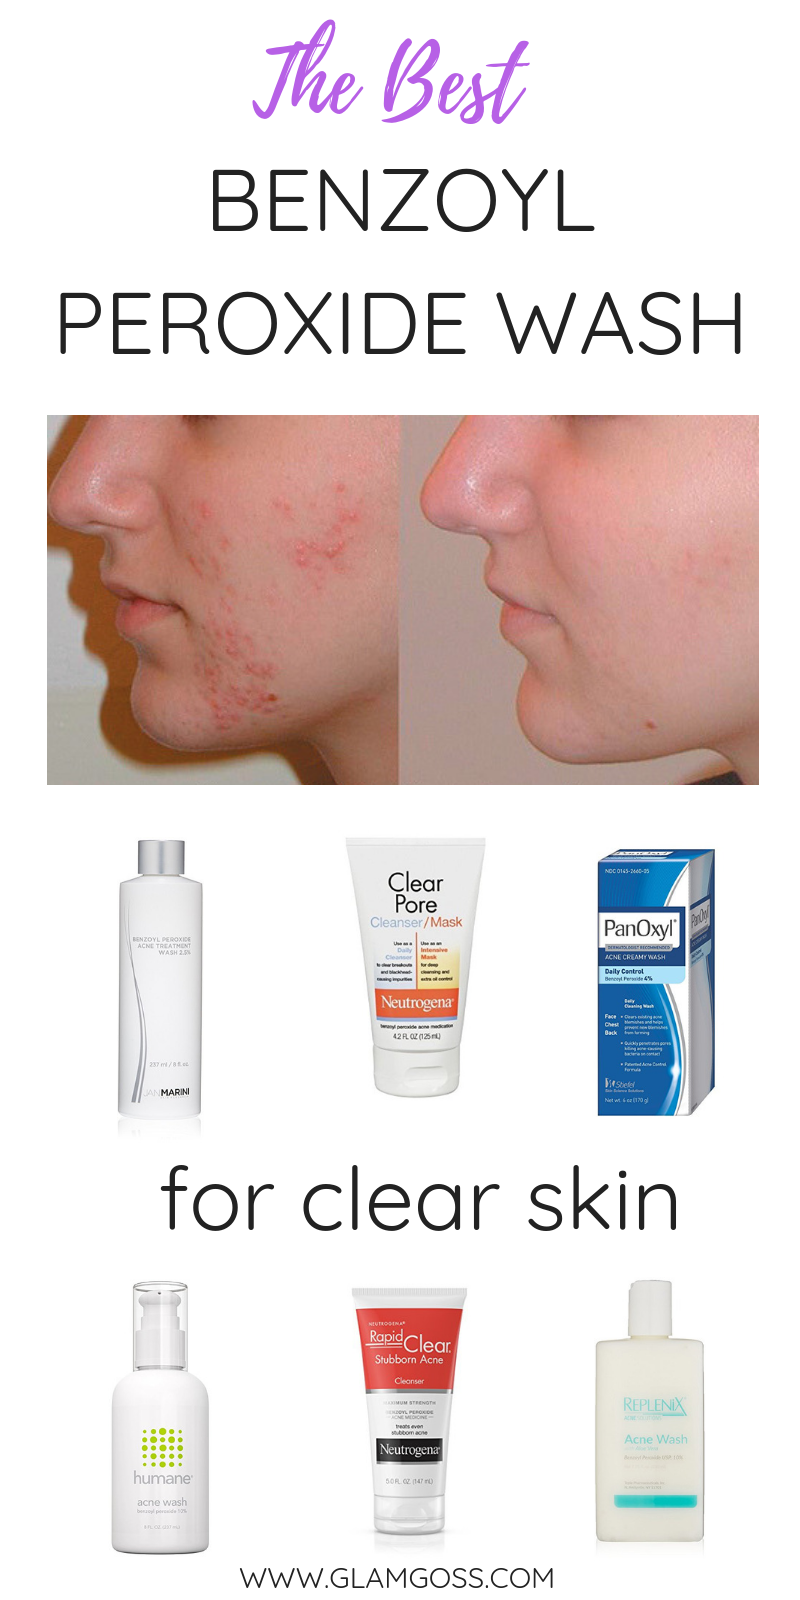 Looking for a fast way to heal acne? This type of fash